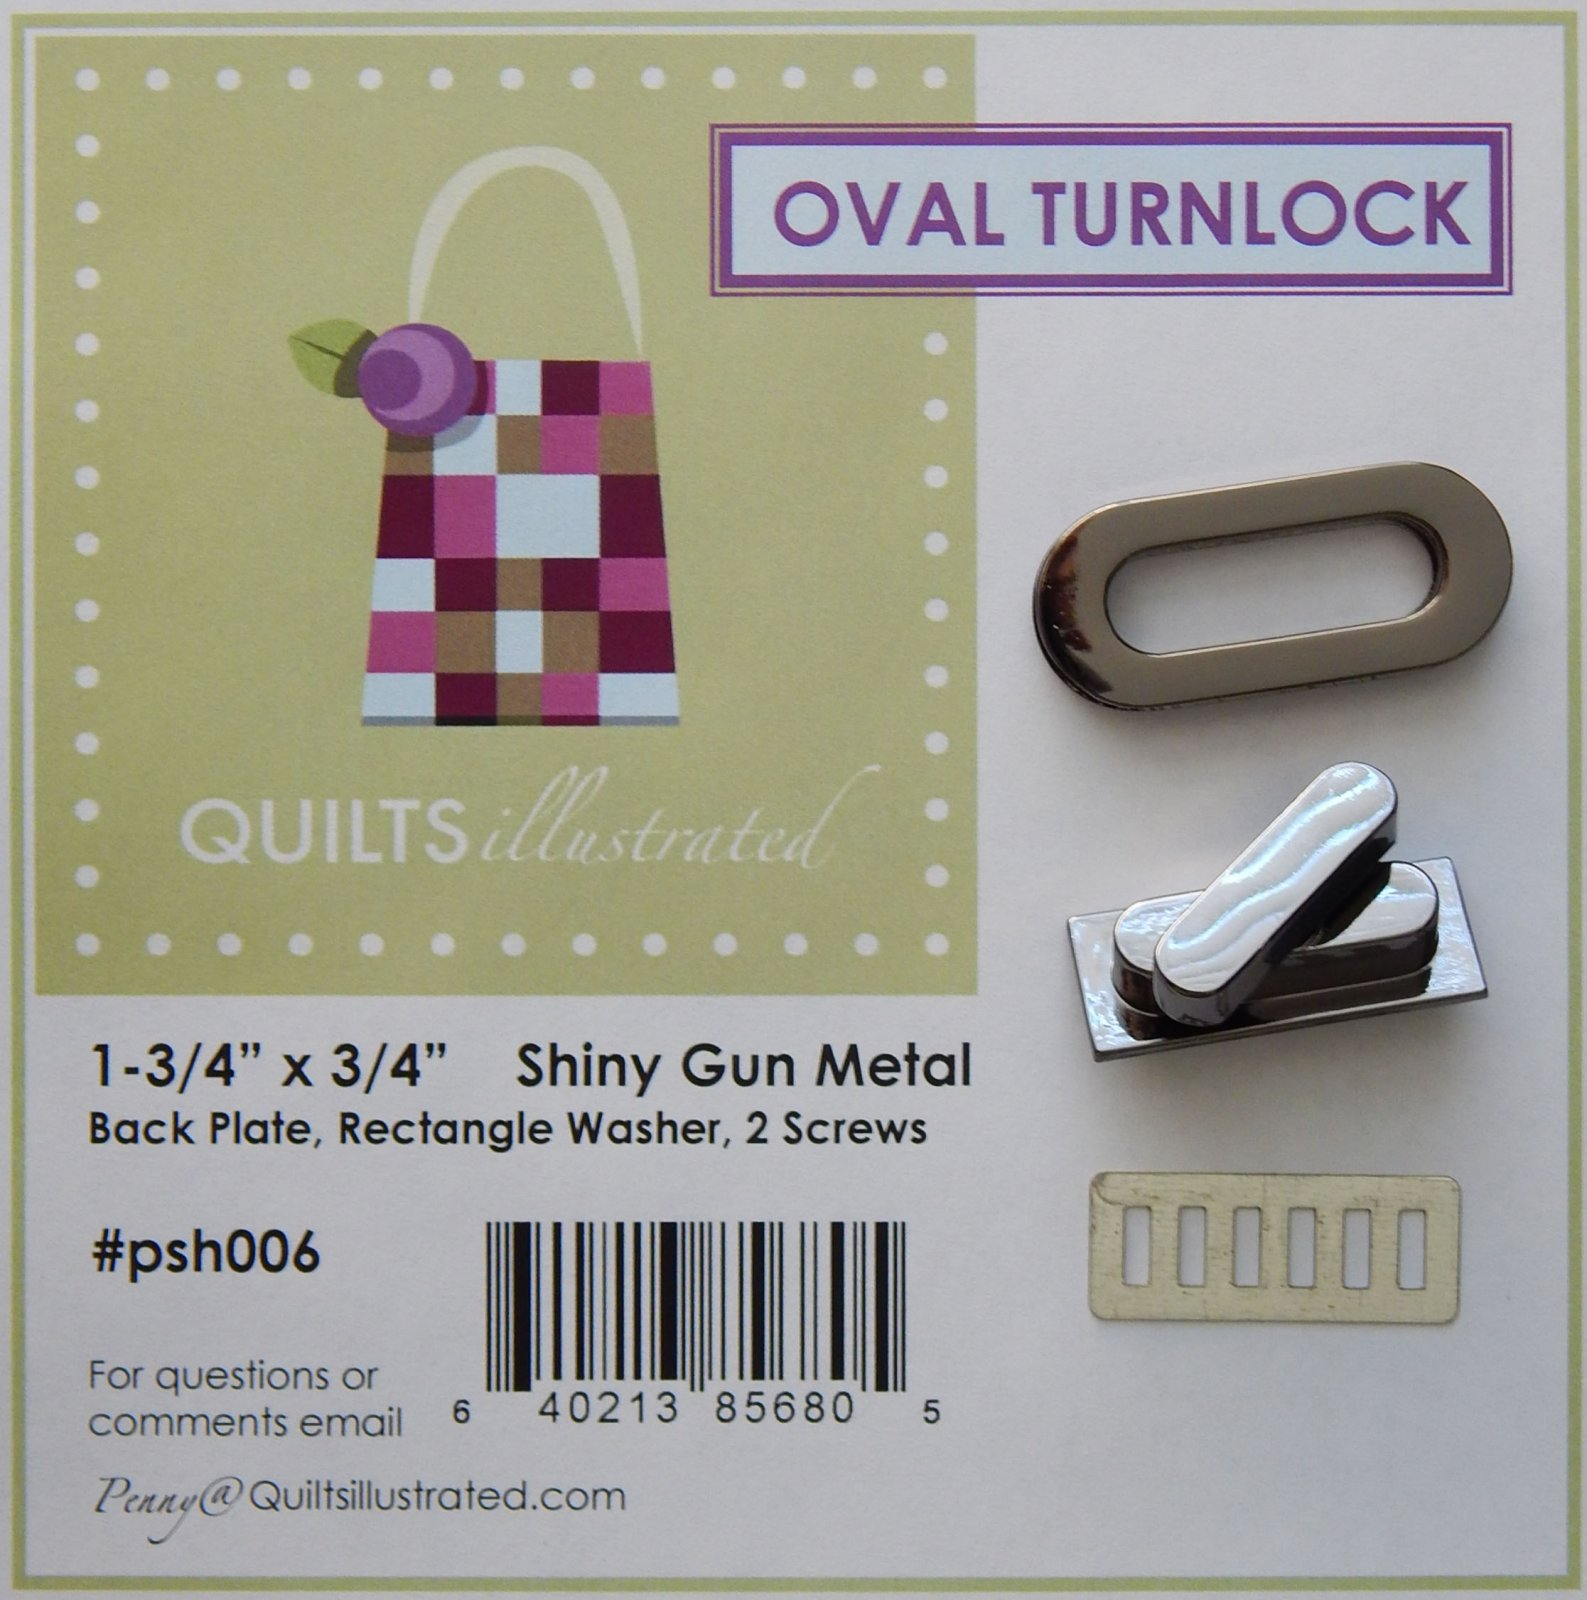 Oval Turnlock Set - Gun Metal (psh006)